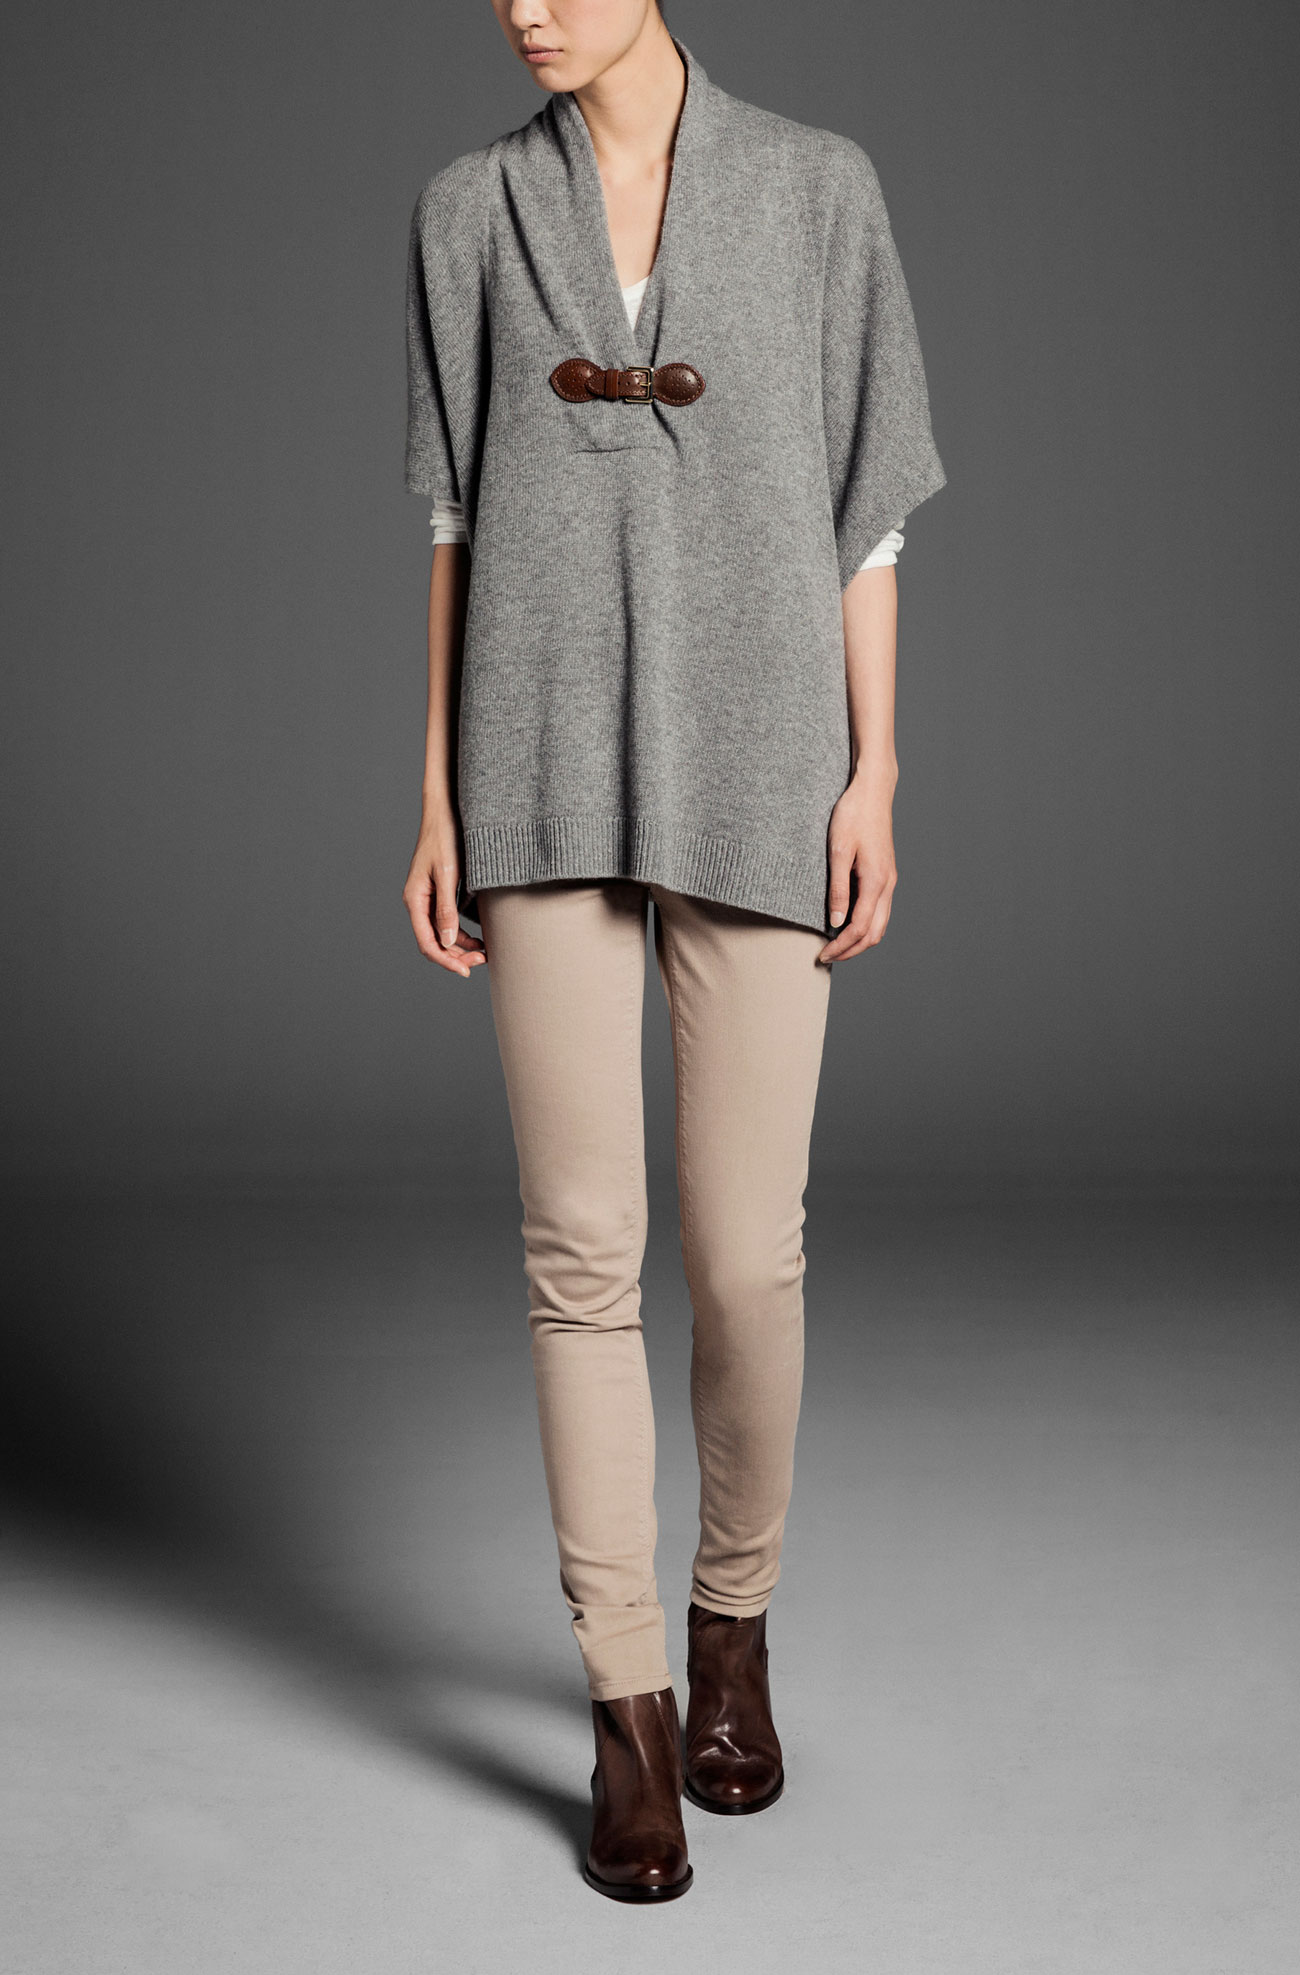 http://static.massimodutti.net/3/photos/2013/I/0/1/p/5645/614/809/5645614809_1_1_1.jpg?timestamp=1373907508472